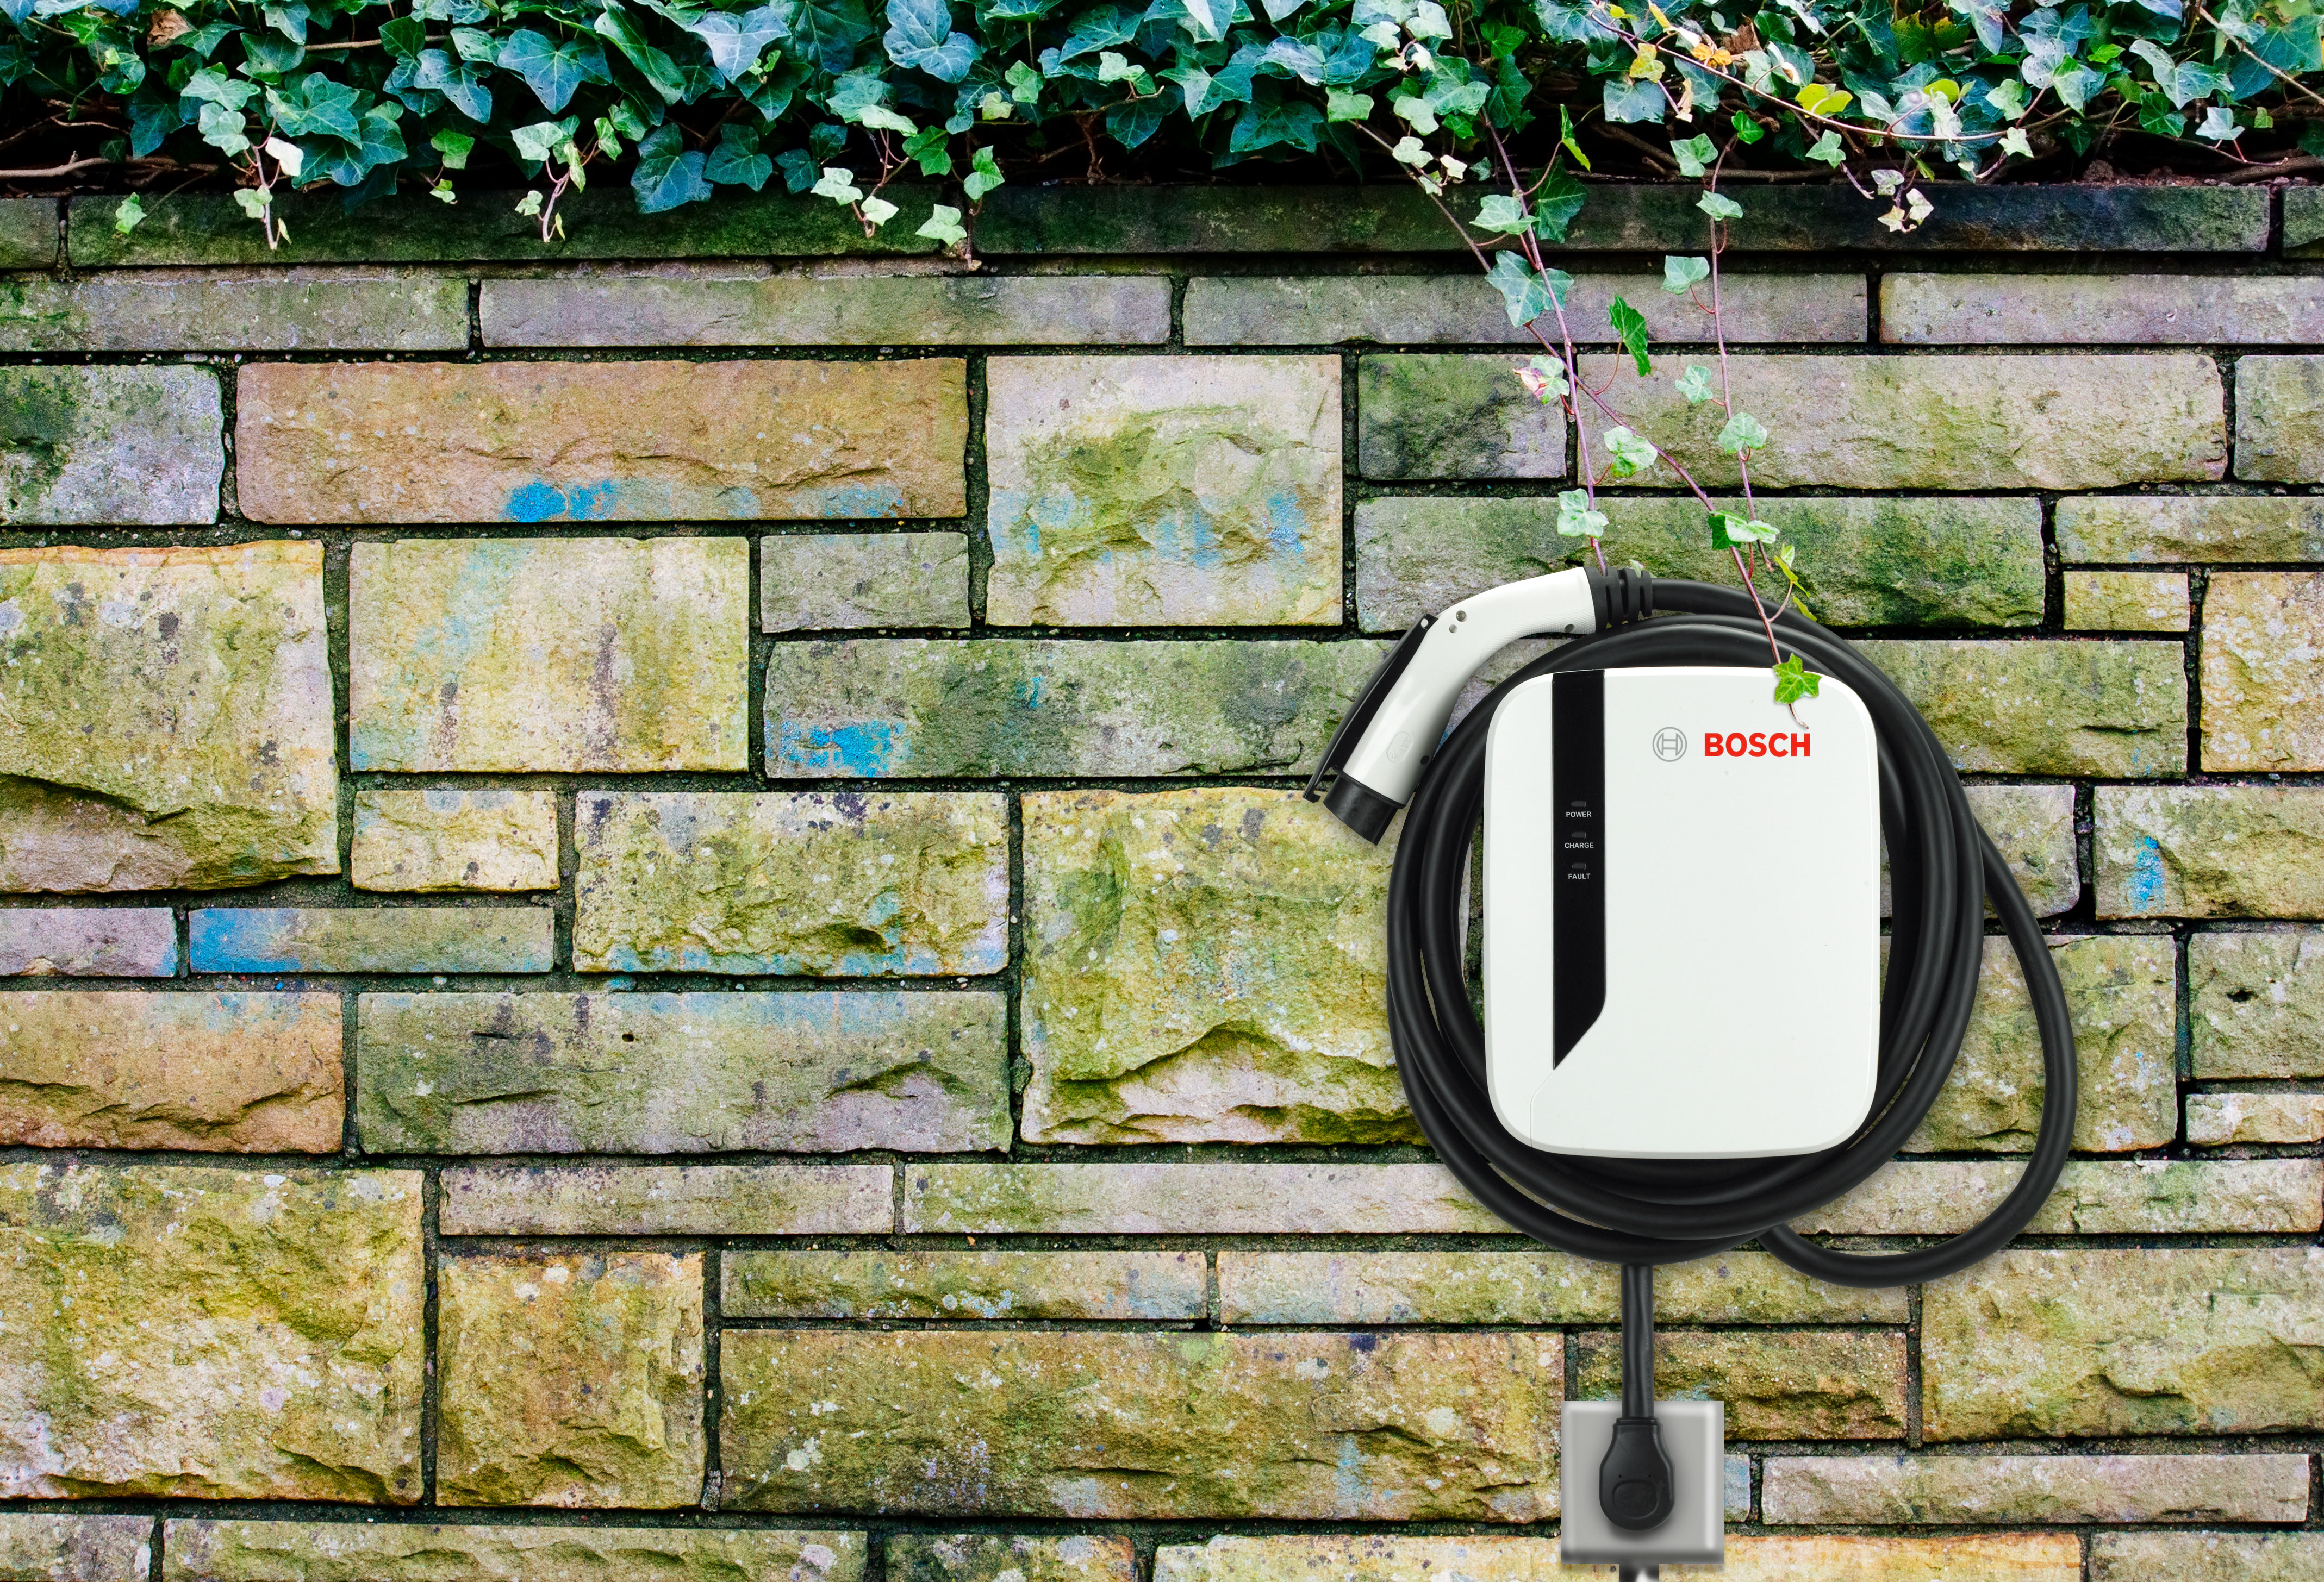 Bosch Power Max 2 - Our Review